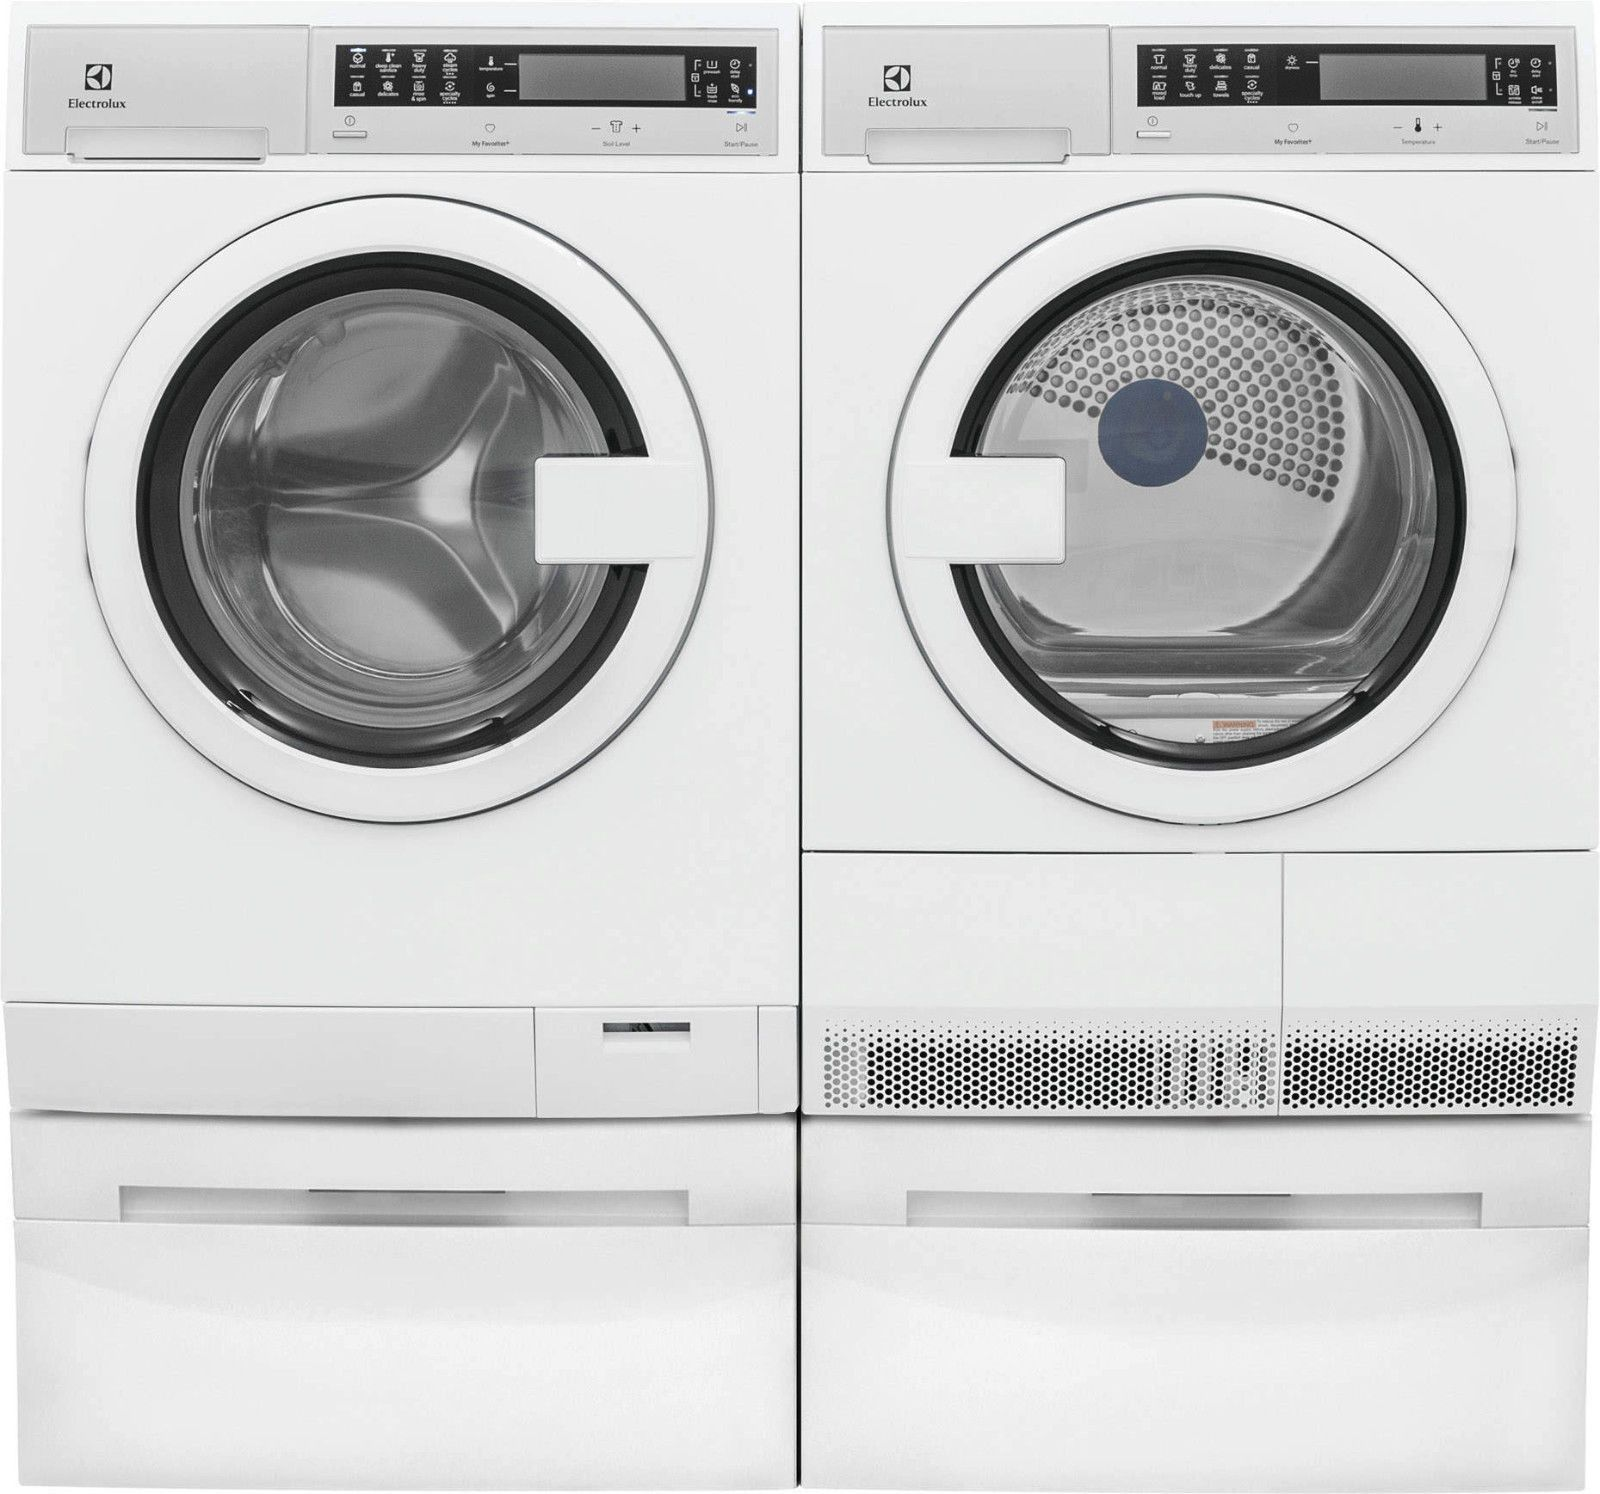 cycle main cu electrolux ft feature steam fast with smartboost titanium washer pedestal